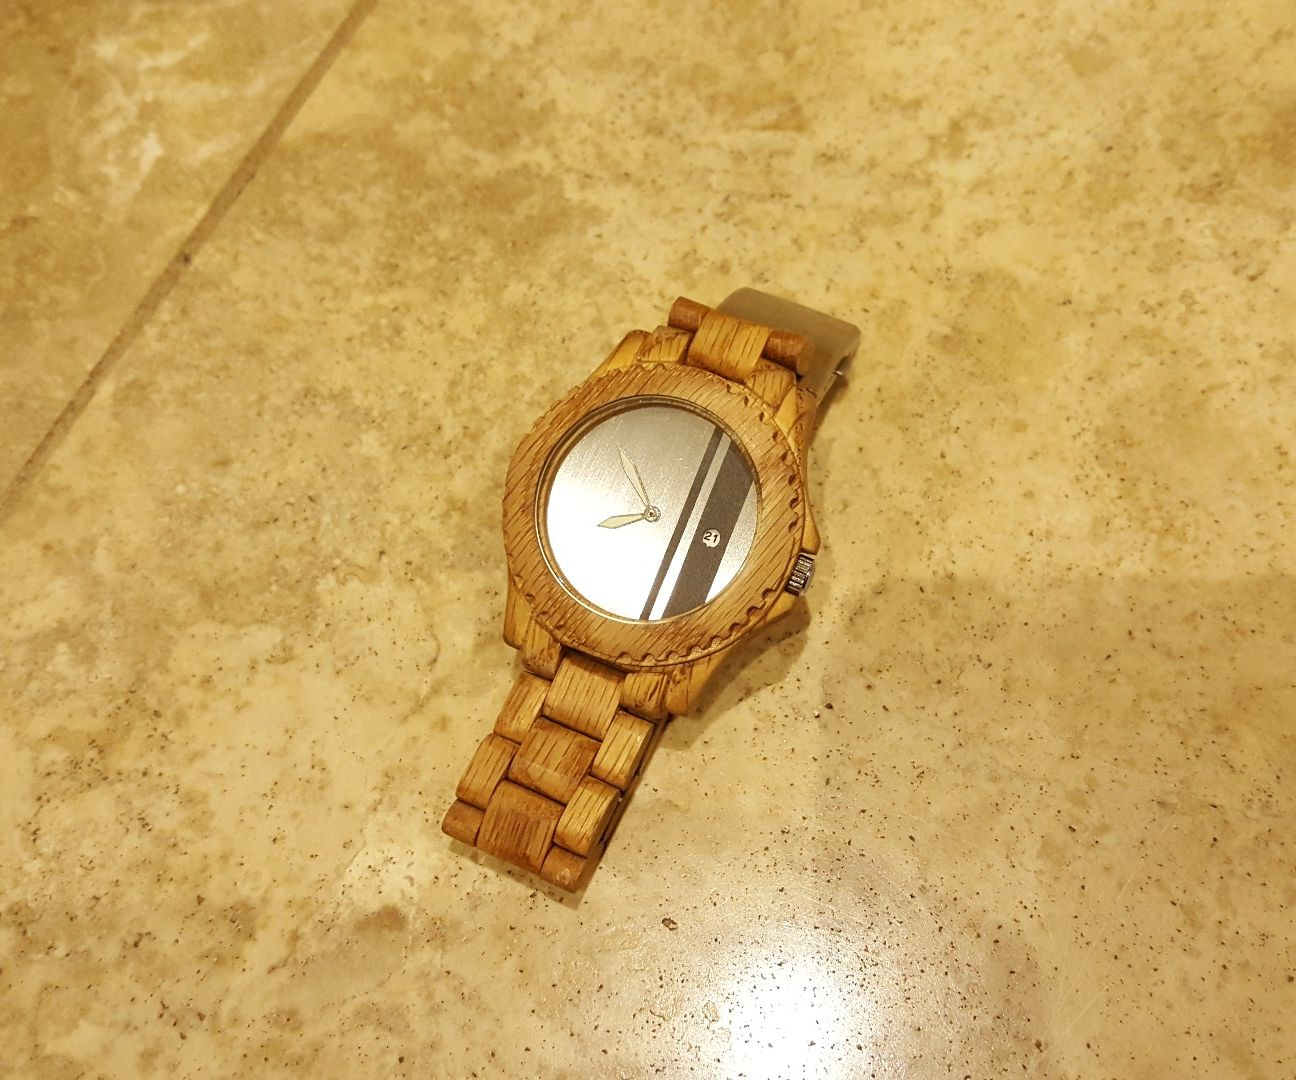 Homemade Wooden Watch (From Scratch)